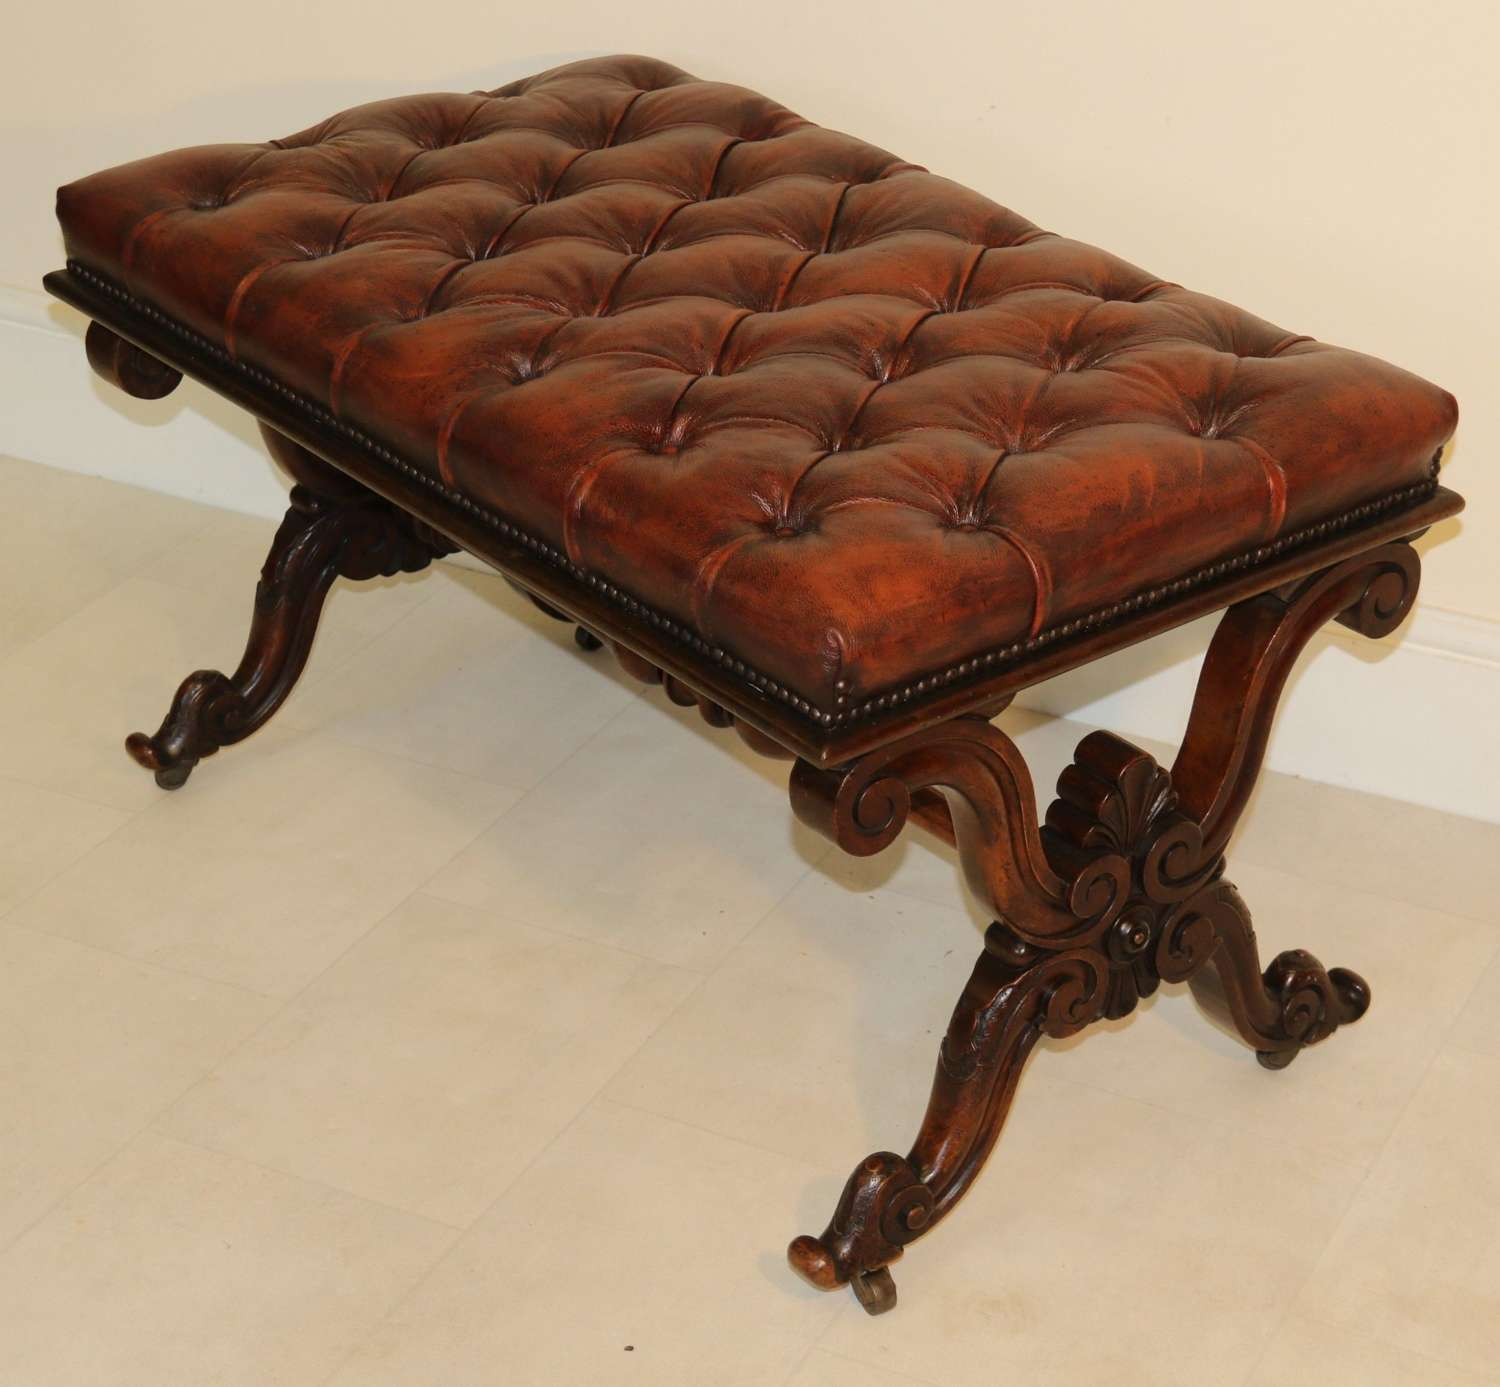 A Large English 19th C Carved Walnut Stool